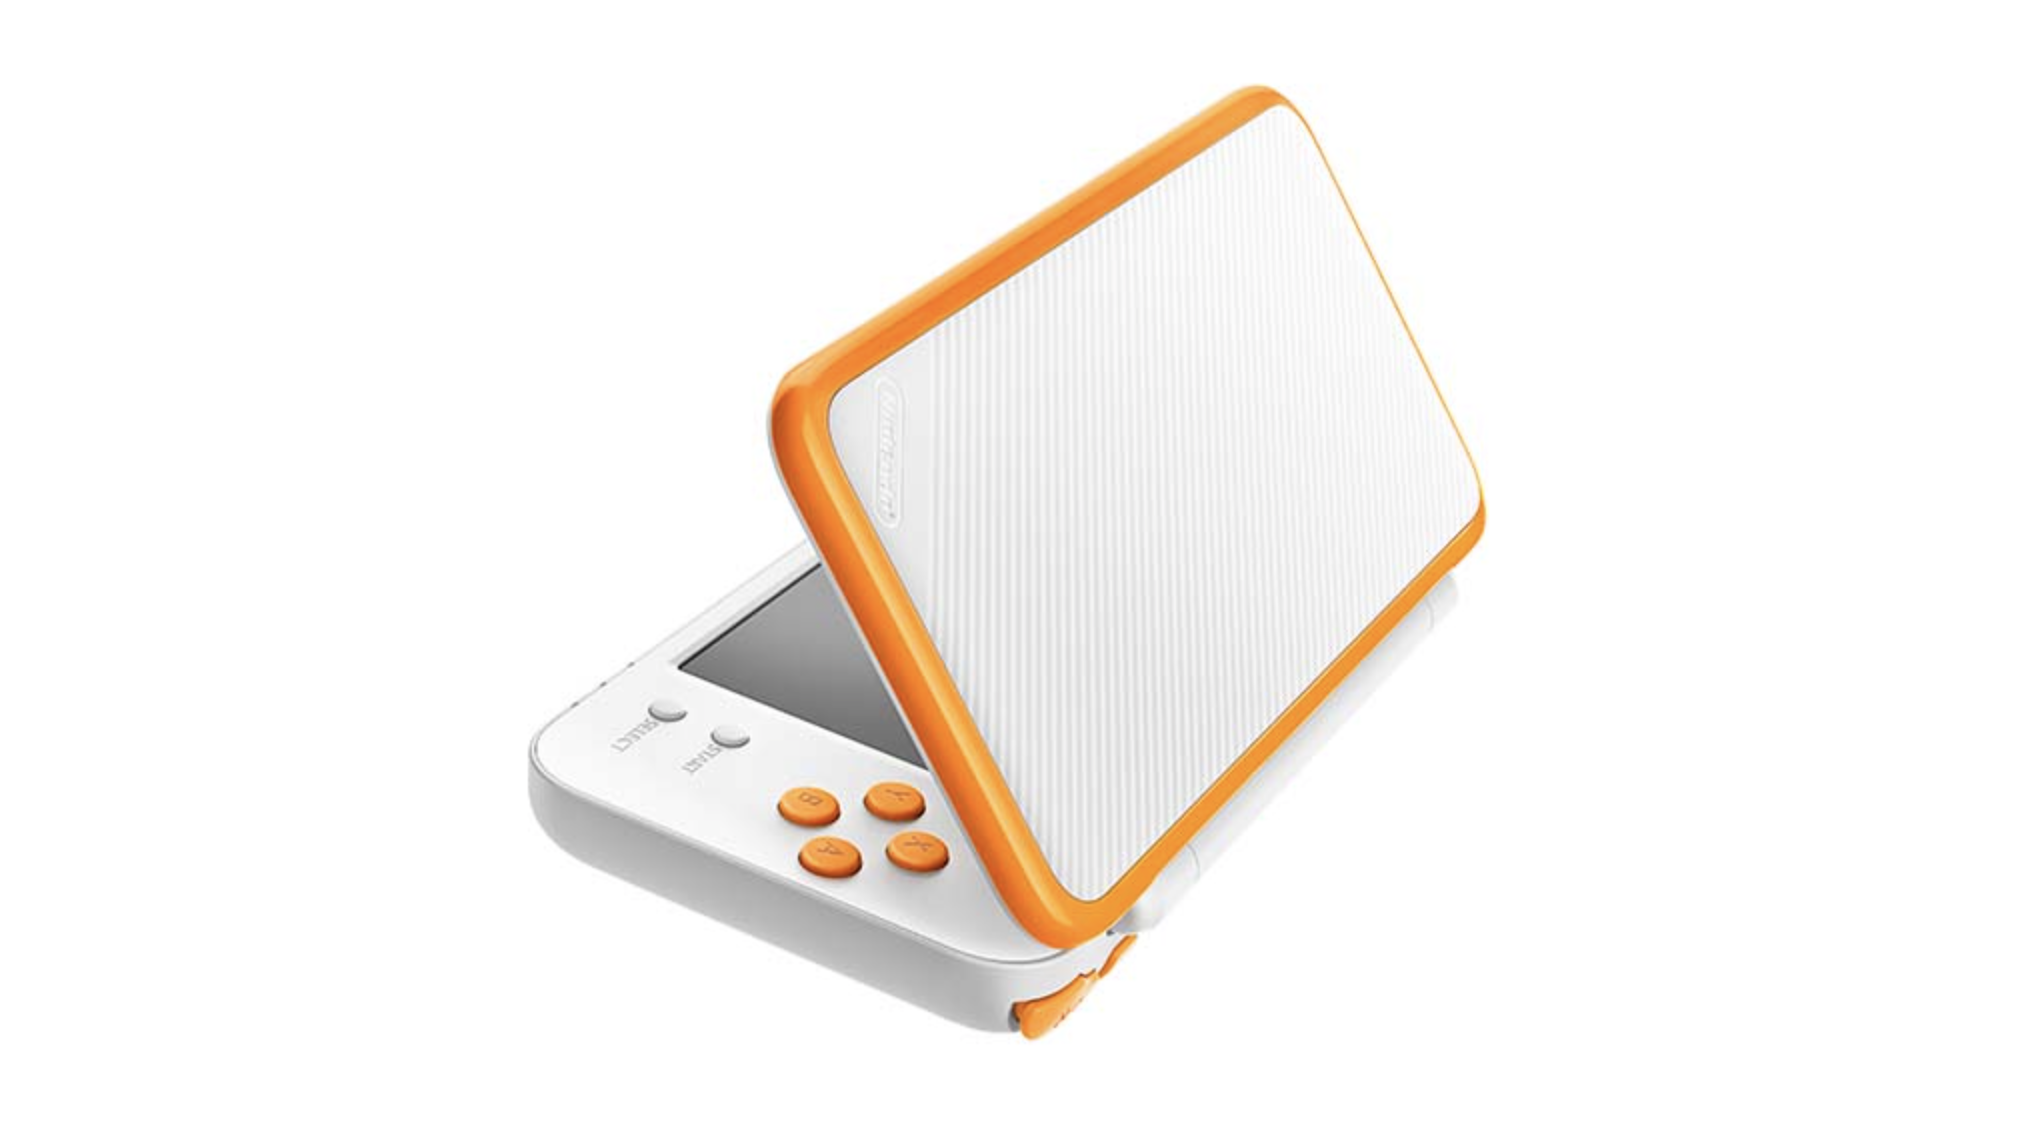 Nintendo 3DS Firmware Update Out Now